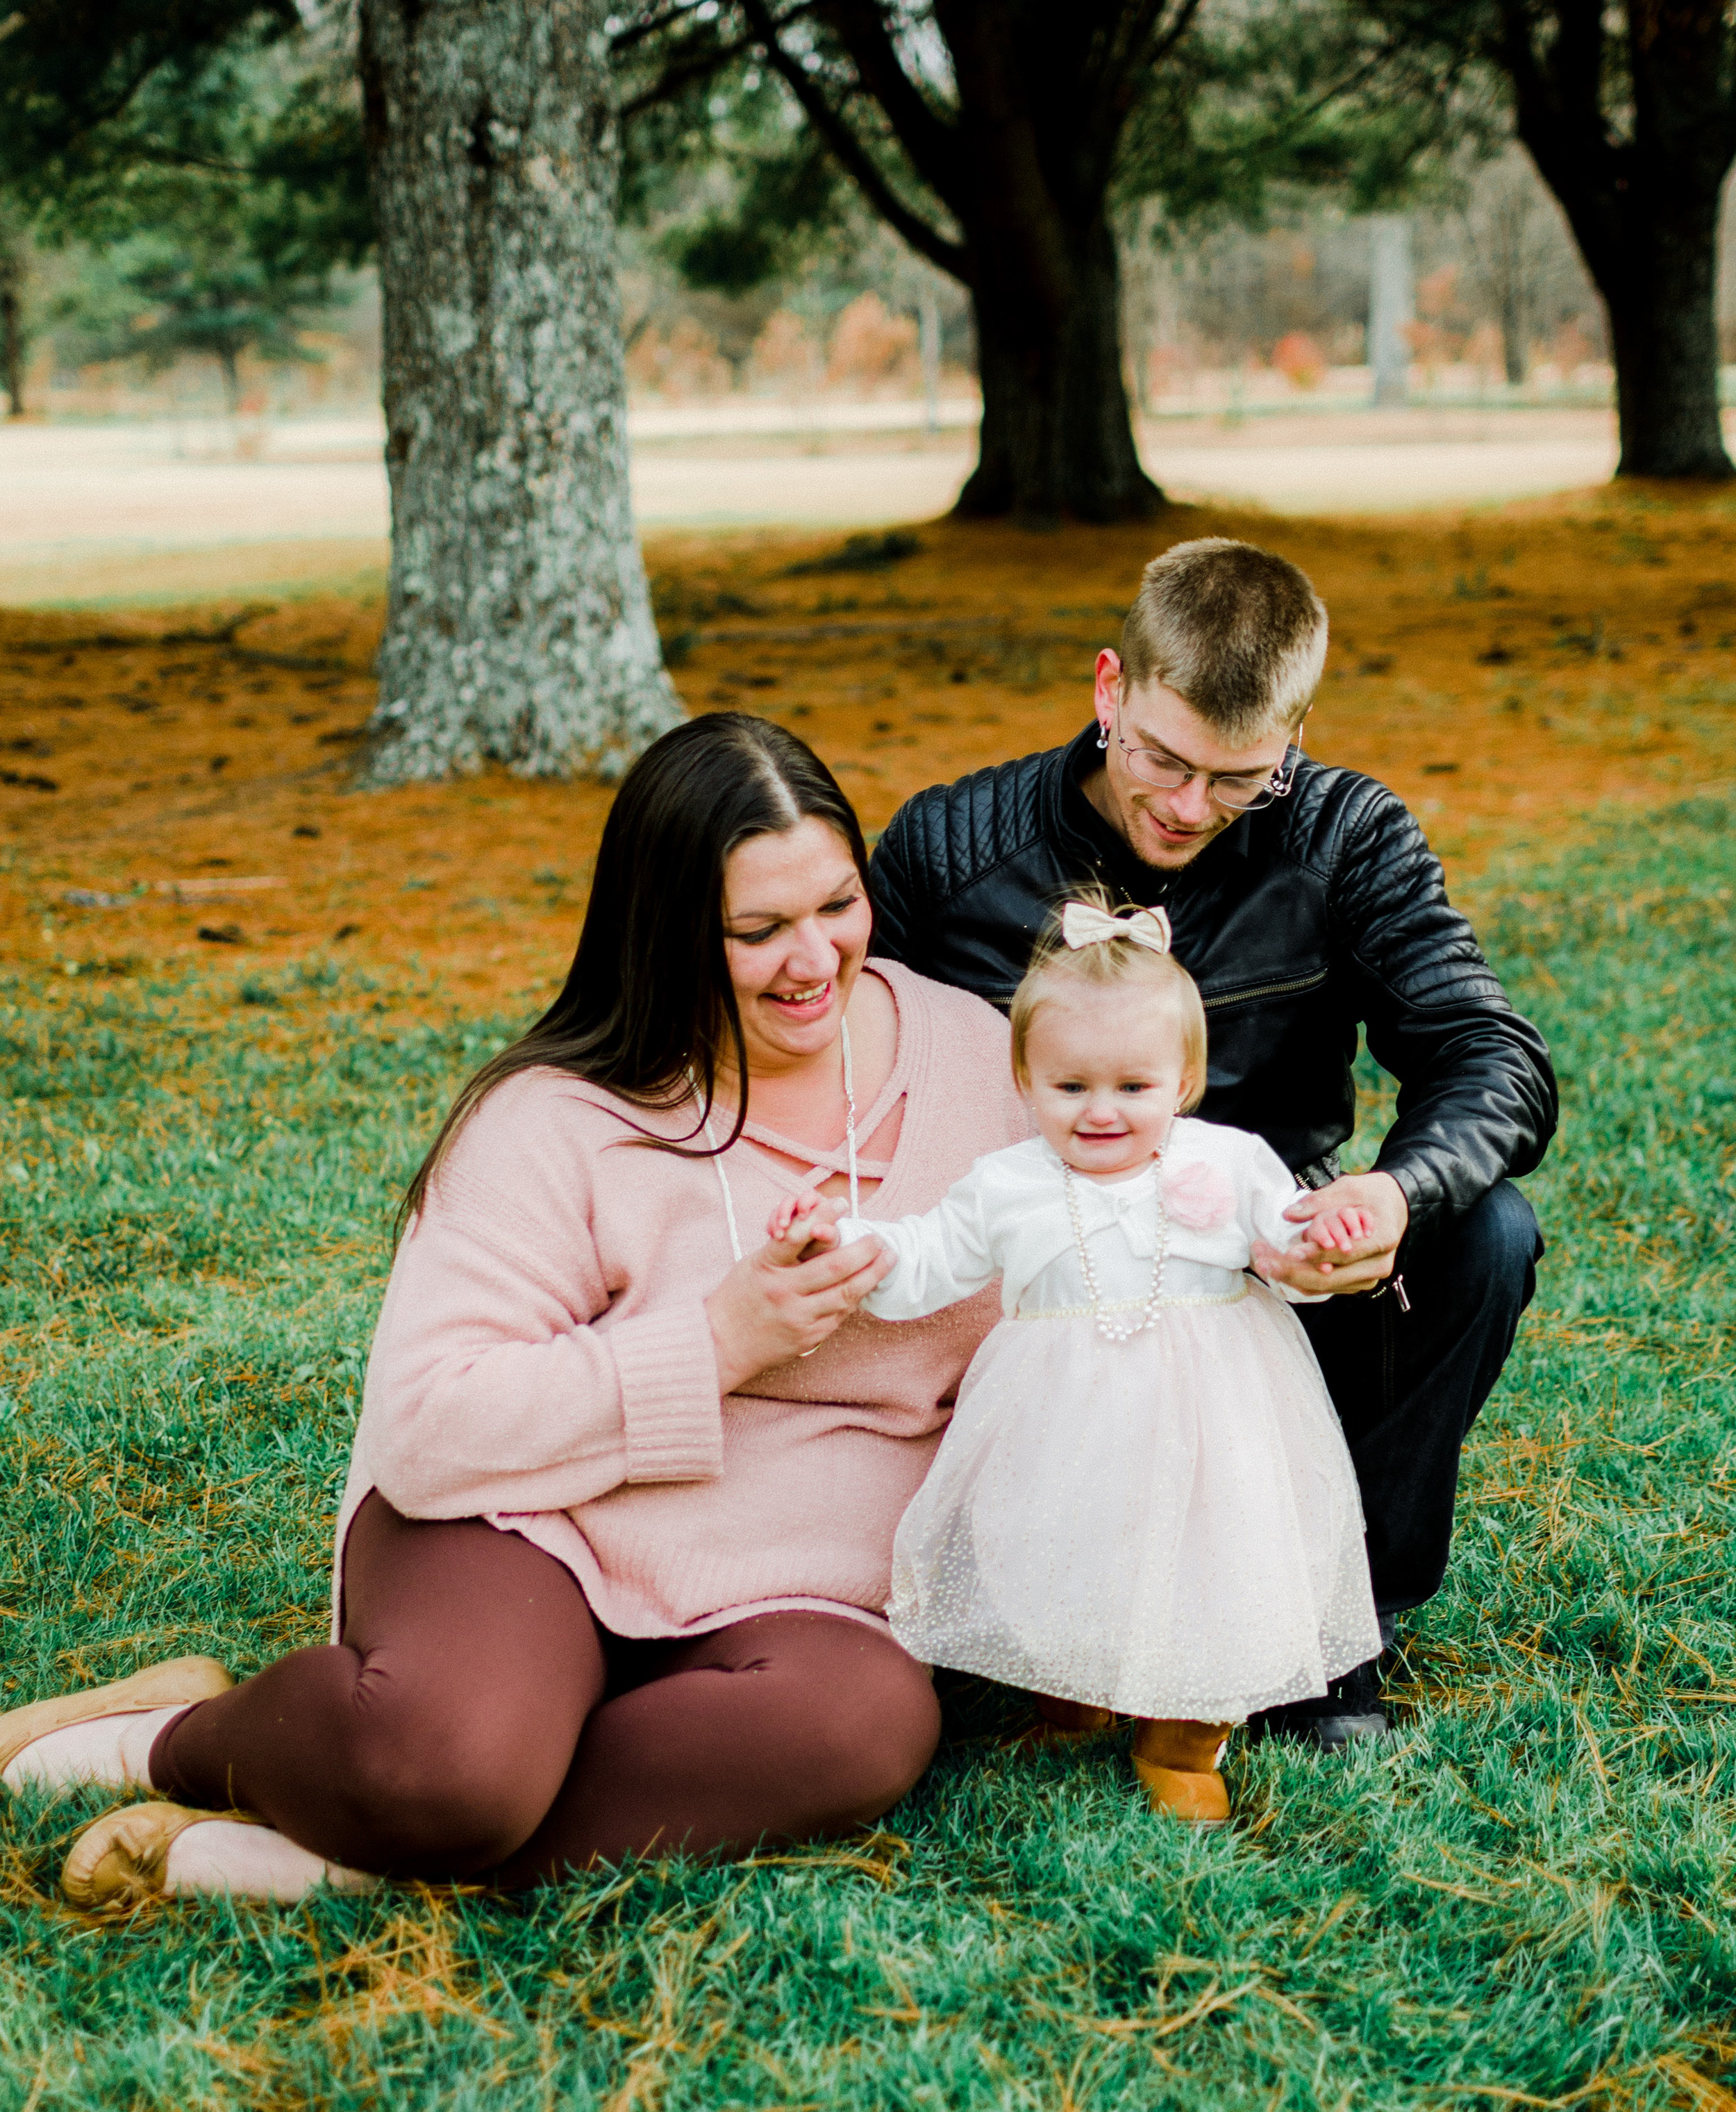 Hingenitz Family Session -32.jpg